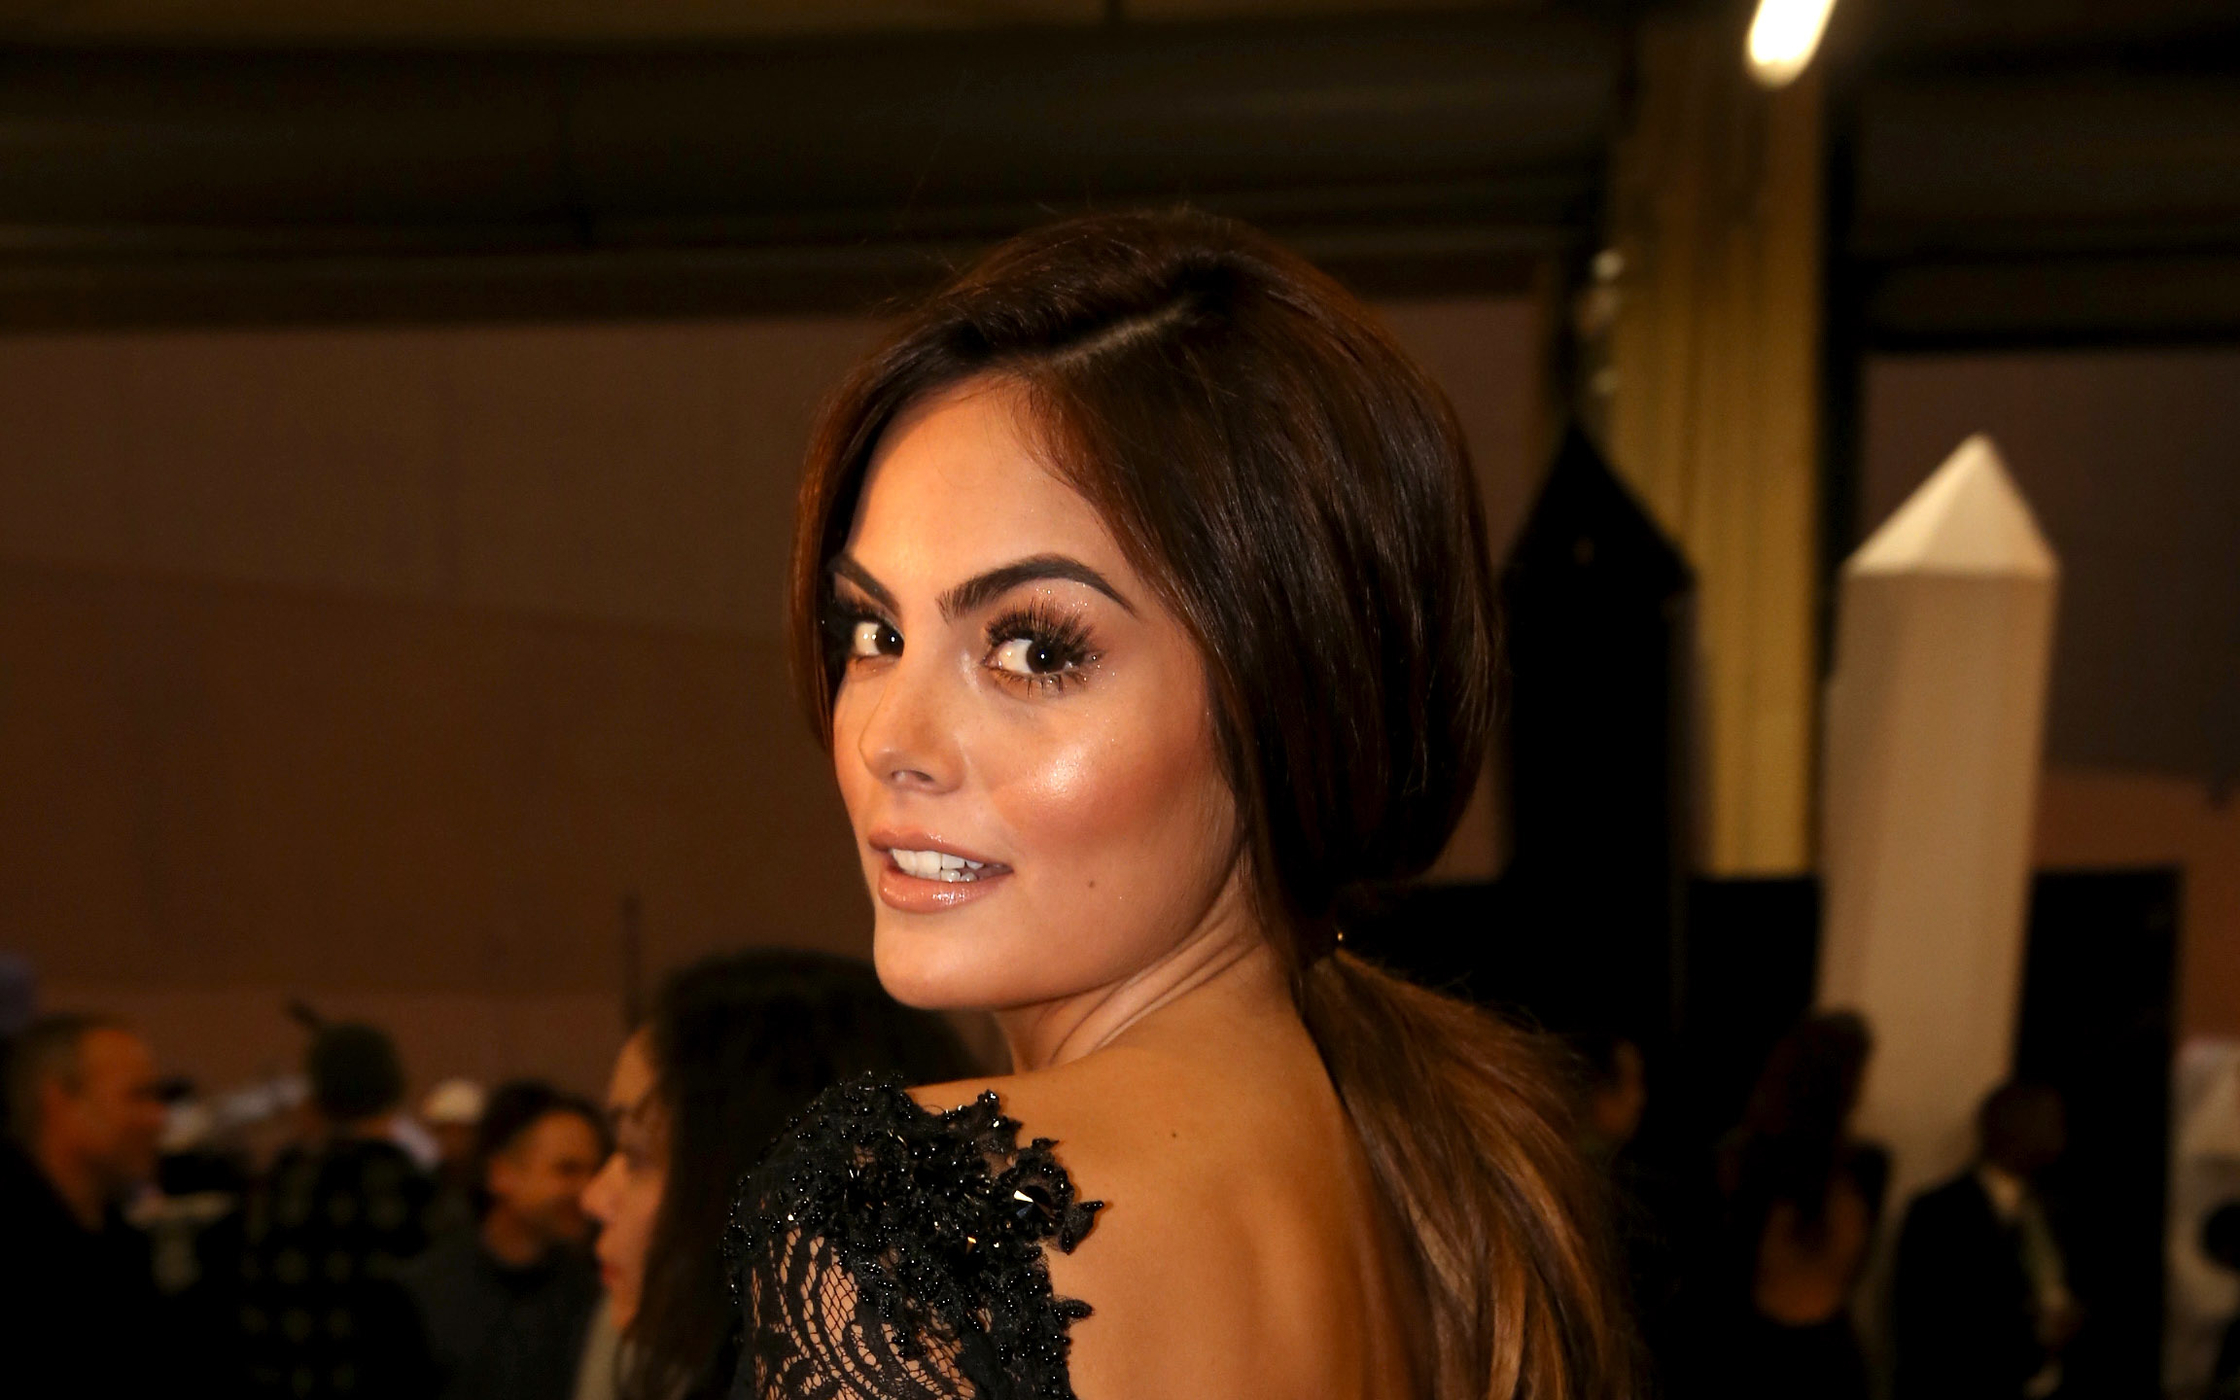 ... Abyss Explore the Collection Models Mexico Ximena Navarrete 553282